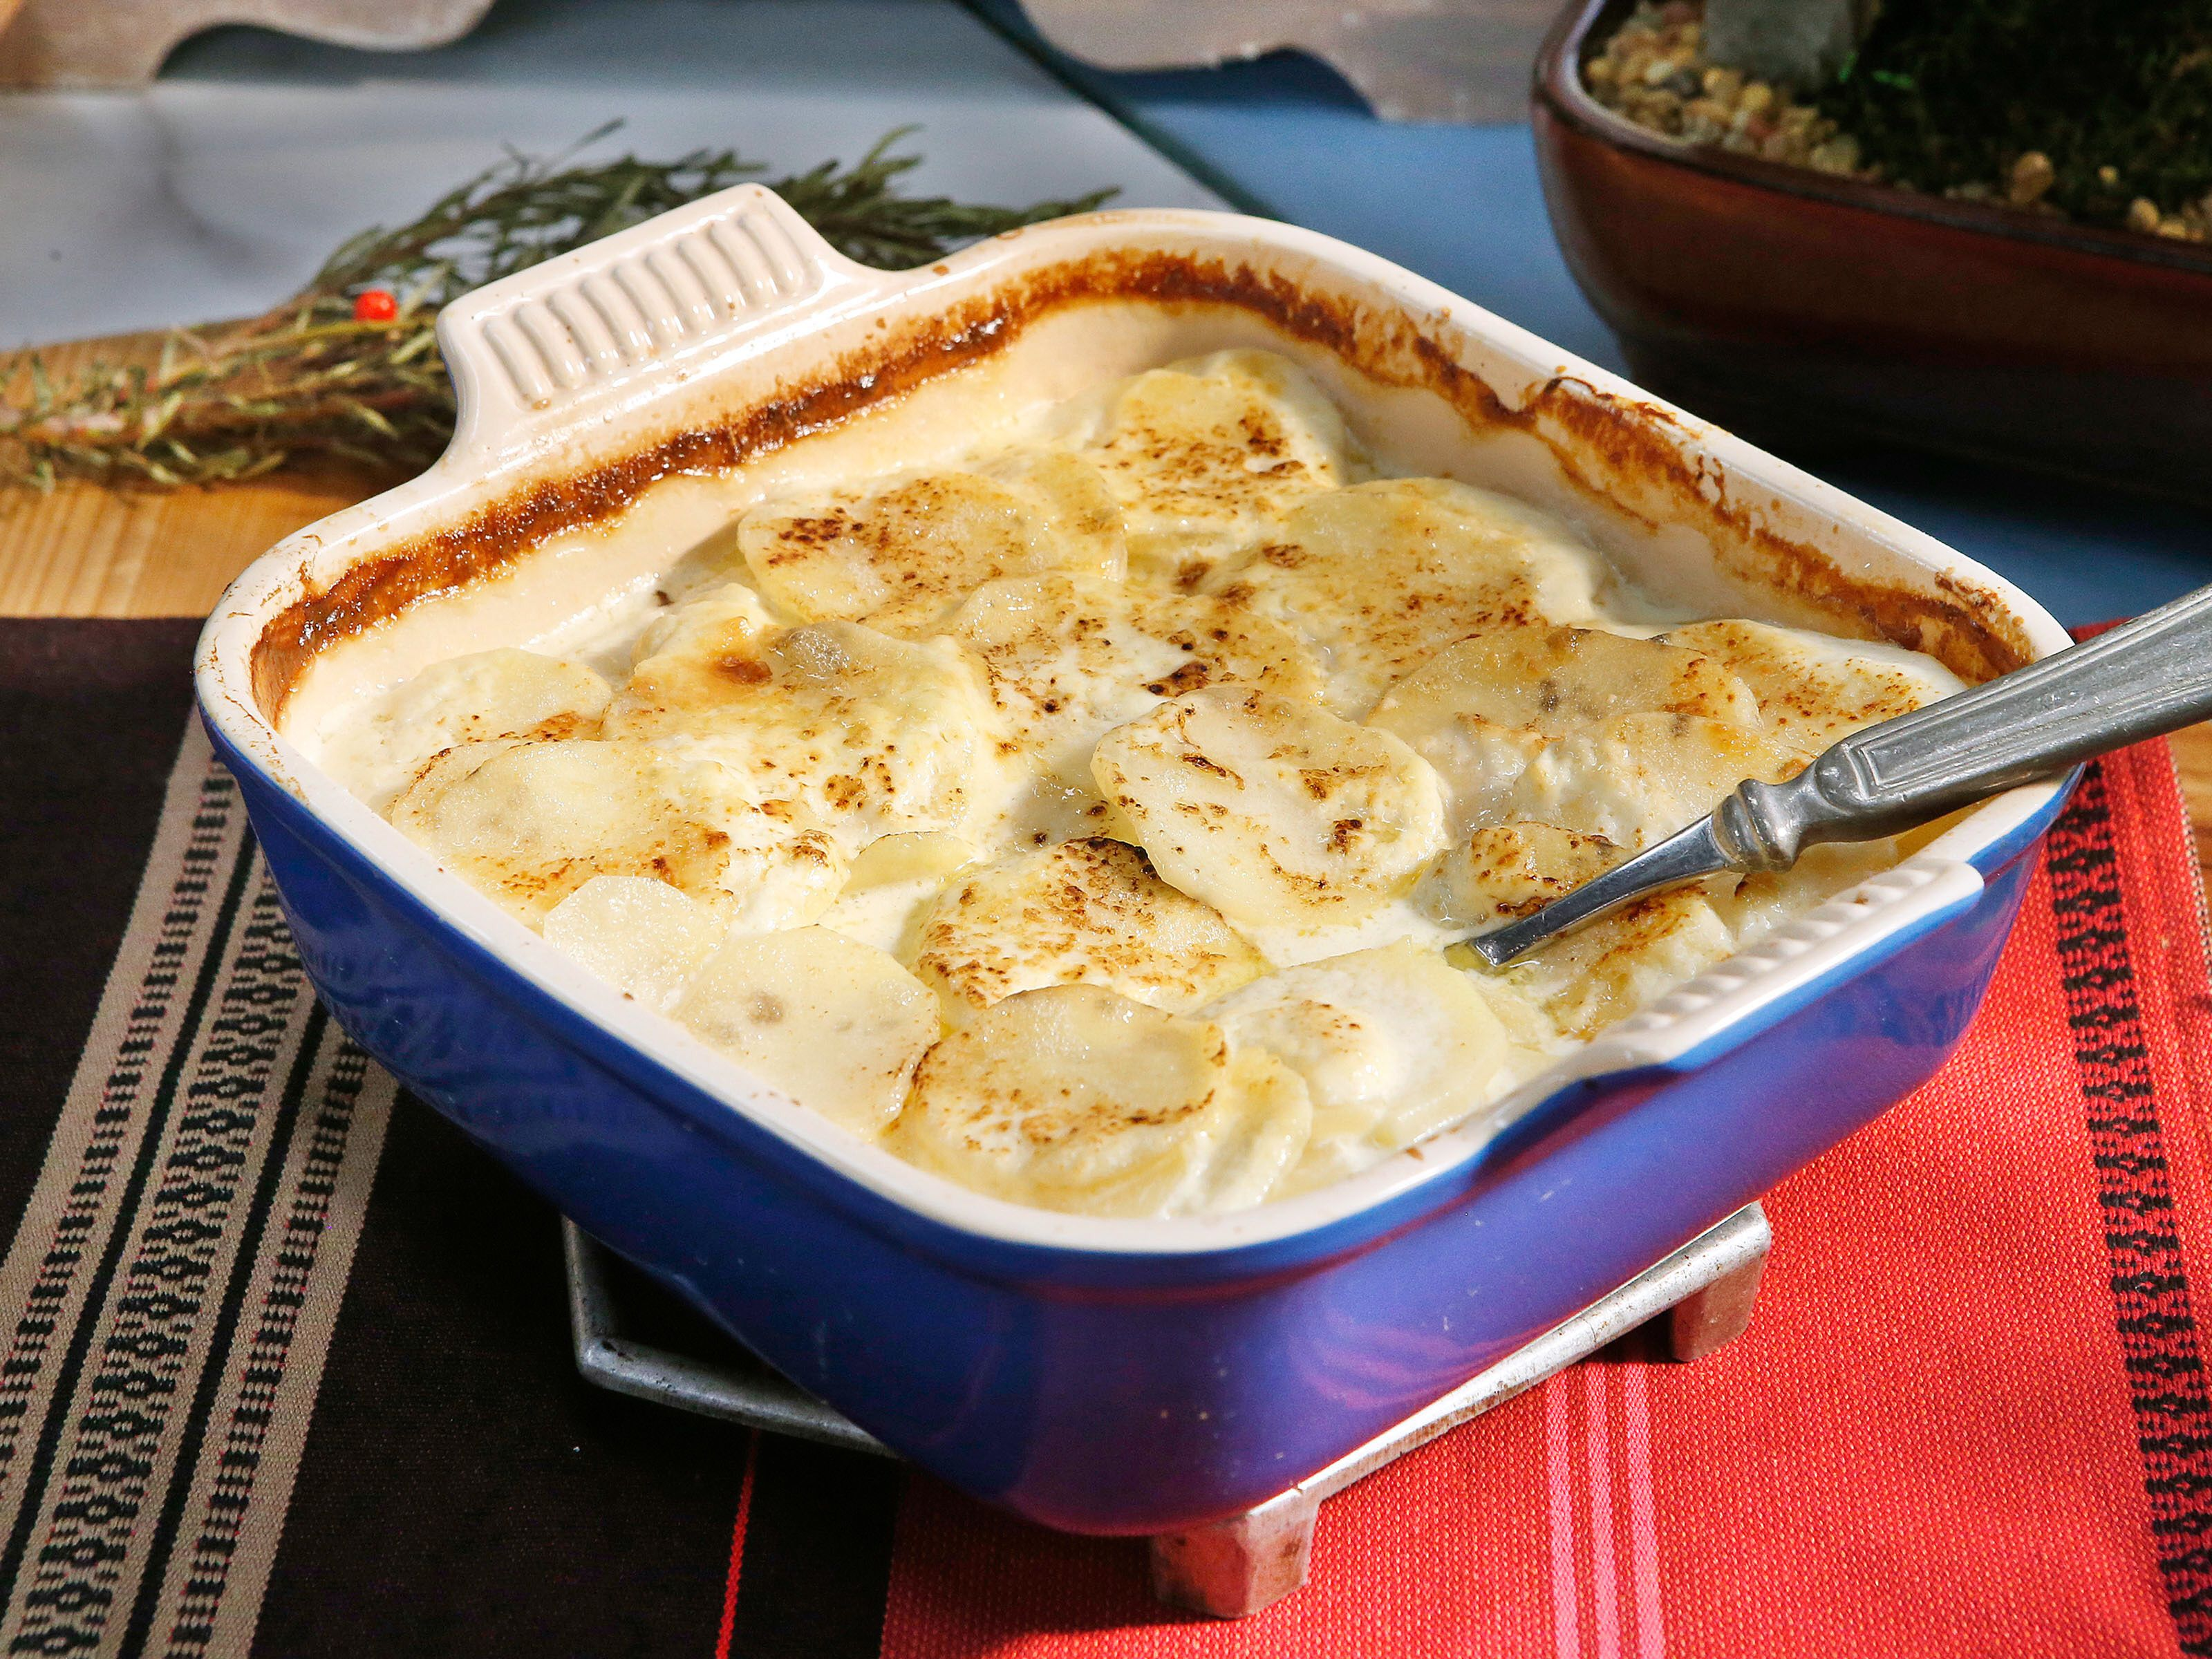 Sunnys mommys sage potatoes recipes pinterest kitchen sunnys mommys sage scalloped potatoes sunny anderson food network lillie lynaes welcome home dinner recipe january 2017 forumfinder Choice Image